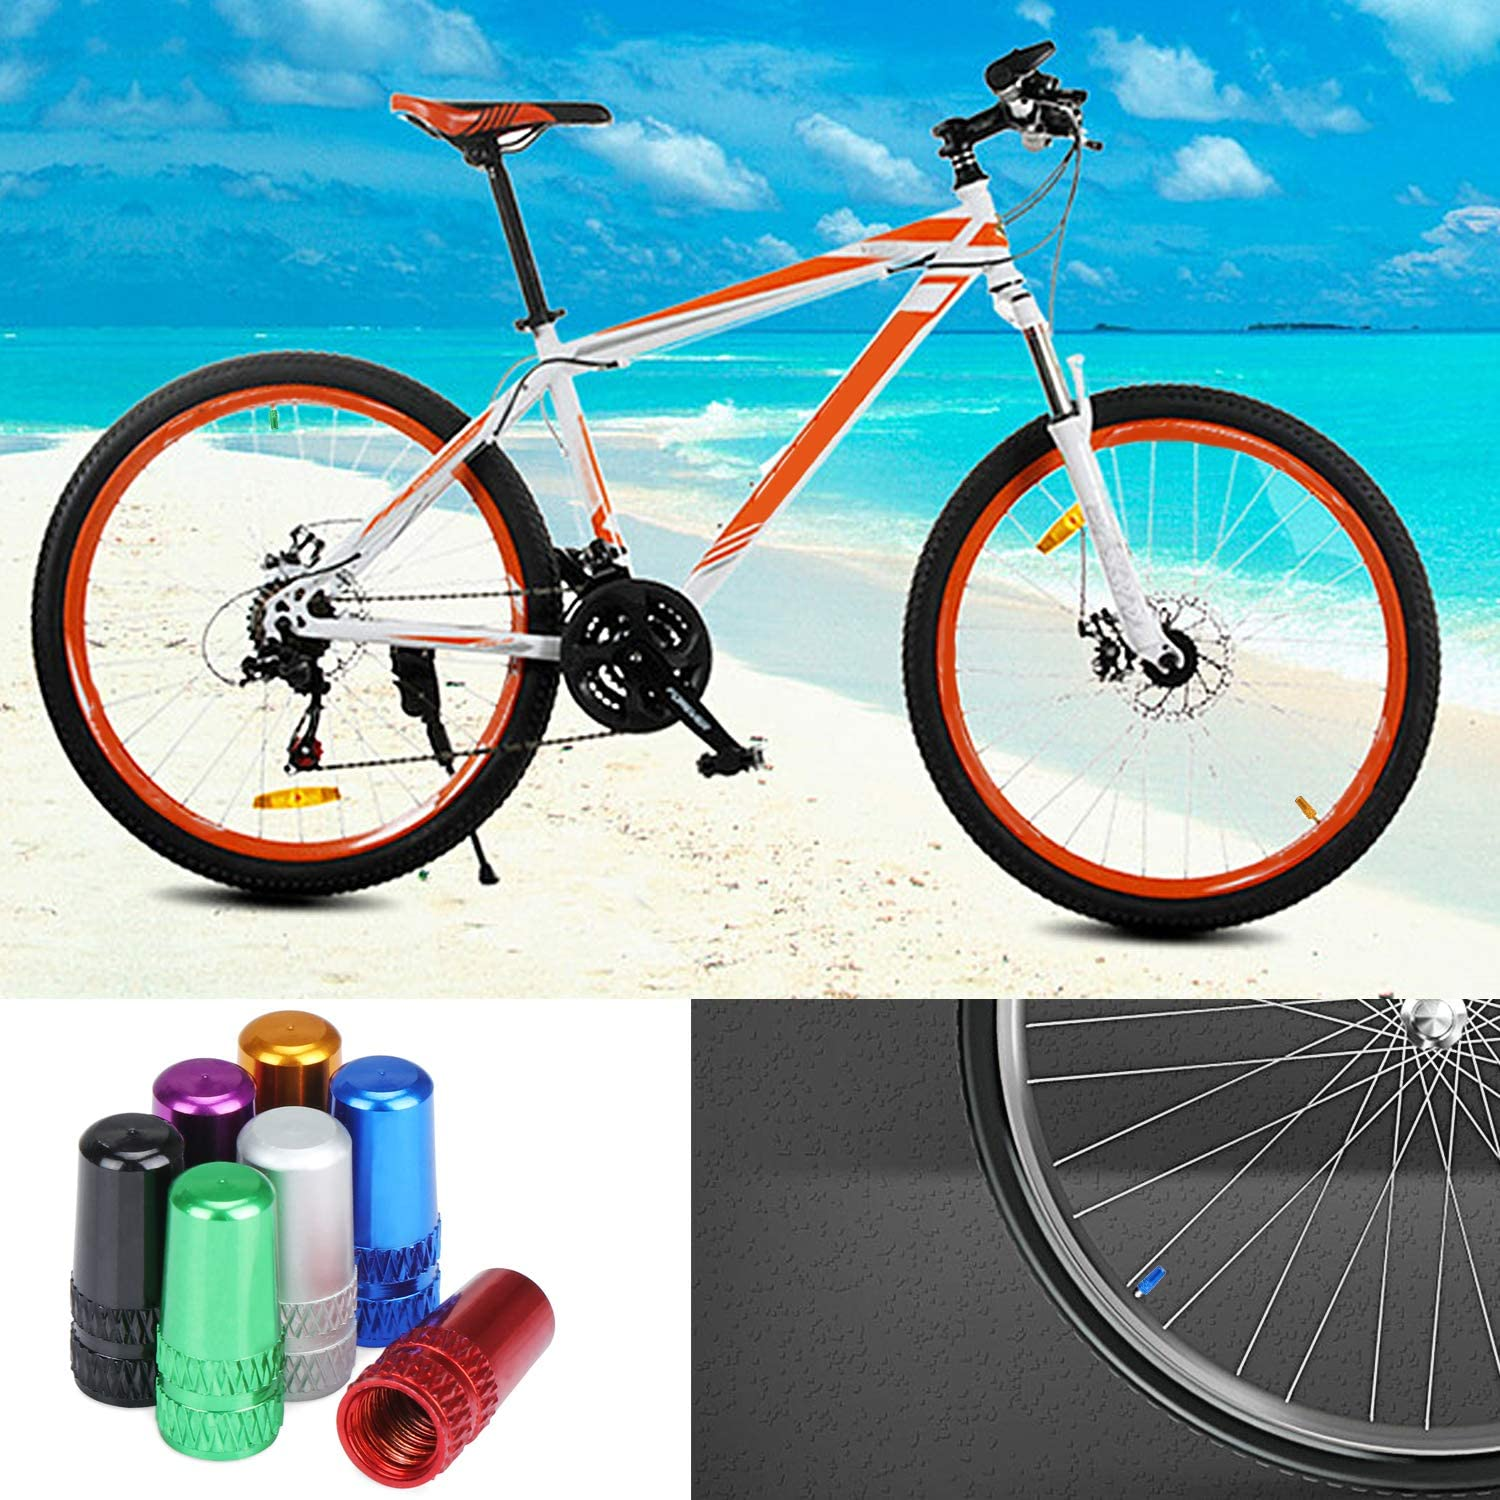 Aluminum Alloy Bike Dust Caps 7 Color Bicycle Tire Valve Caps 42 Pieces OCR French Tyre Caps Cycling Valve Covers